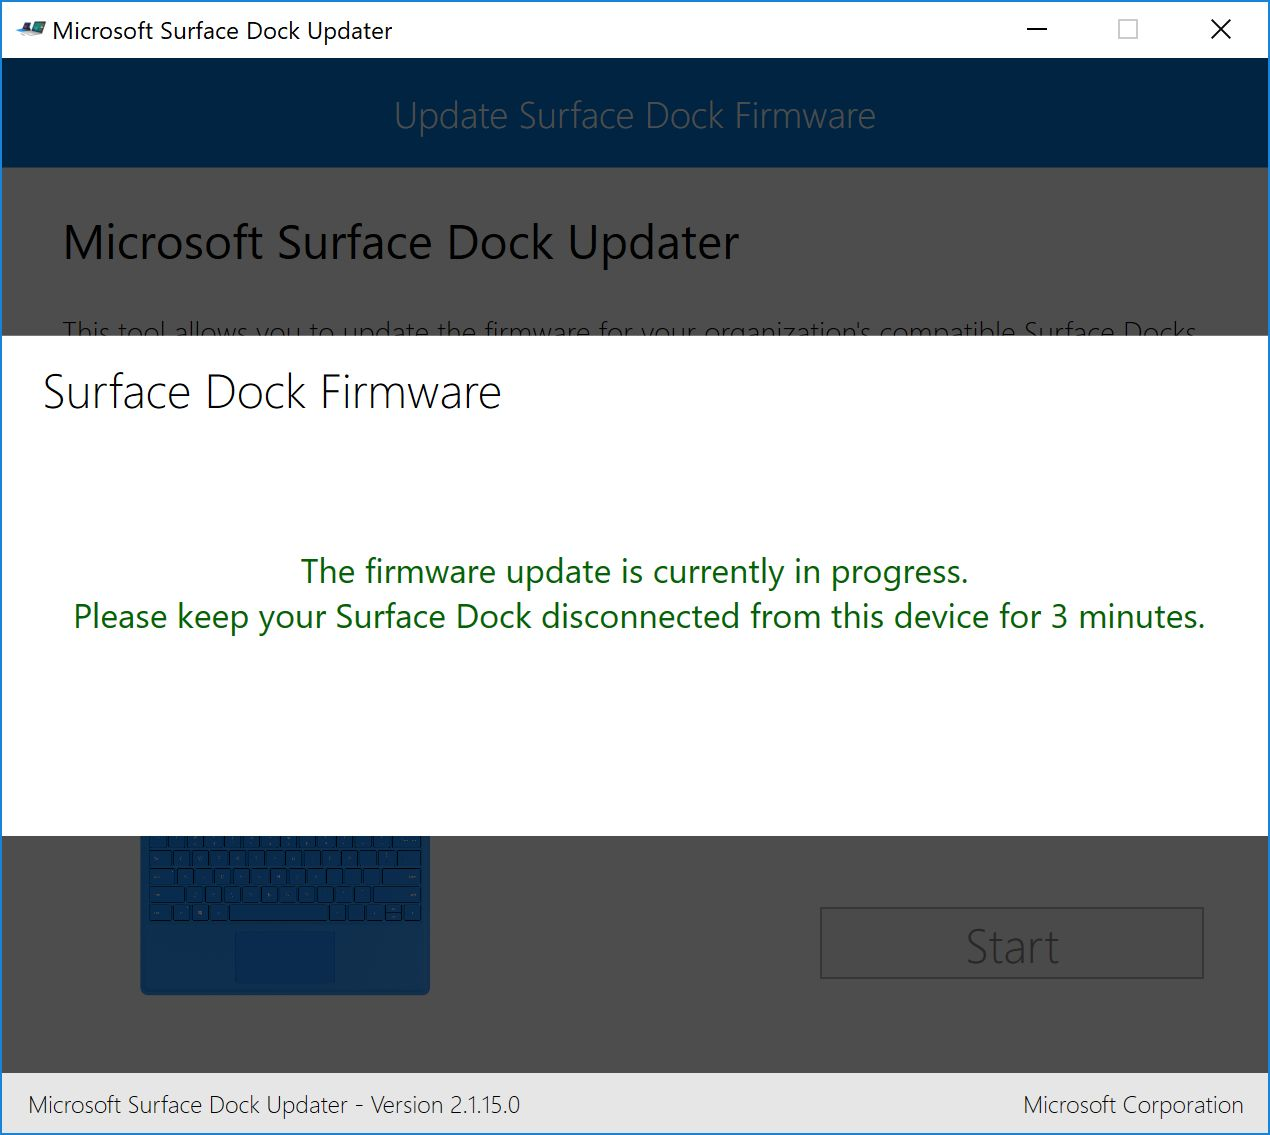 SurfacePro – How to update #SurfaceDock firmware and avoid a